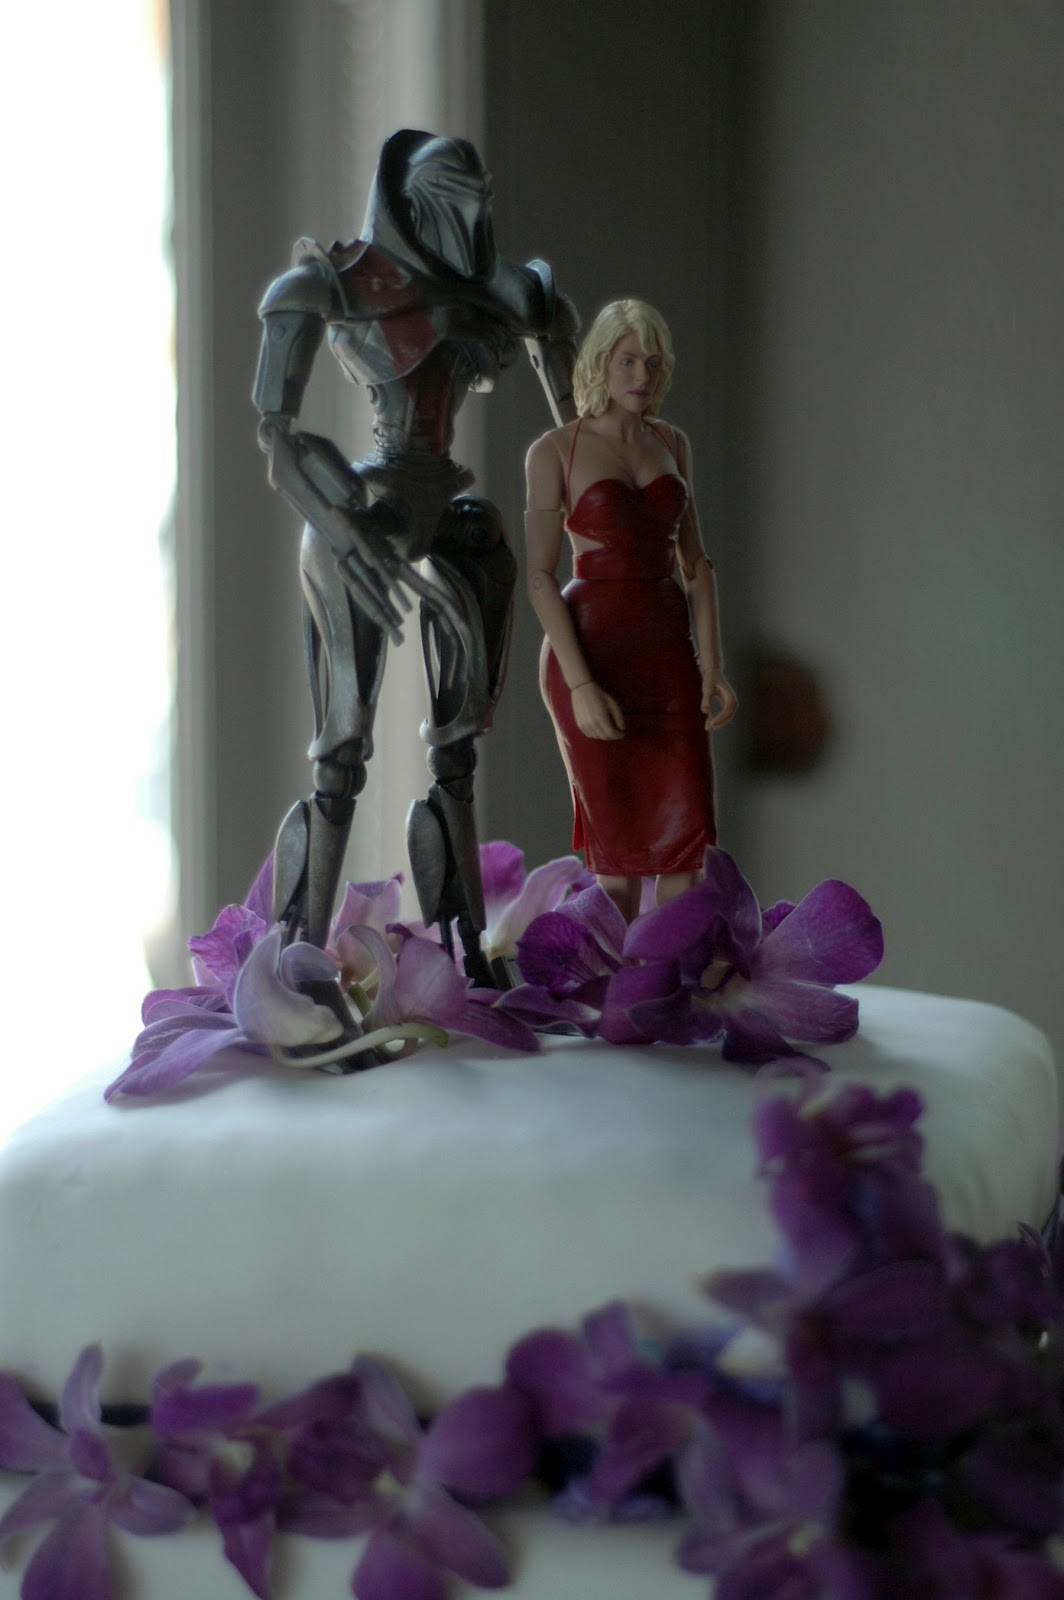 gamer wedding rings gamer wedding rings gamer wedding rings hd pictures